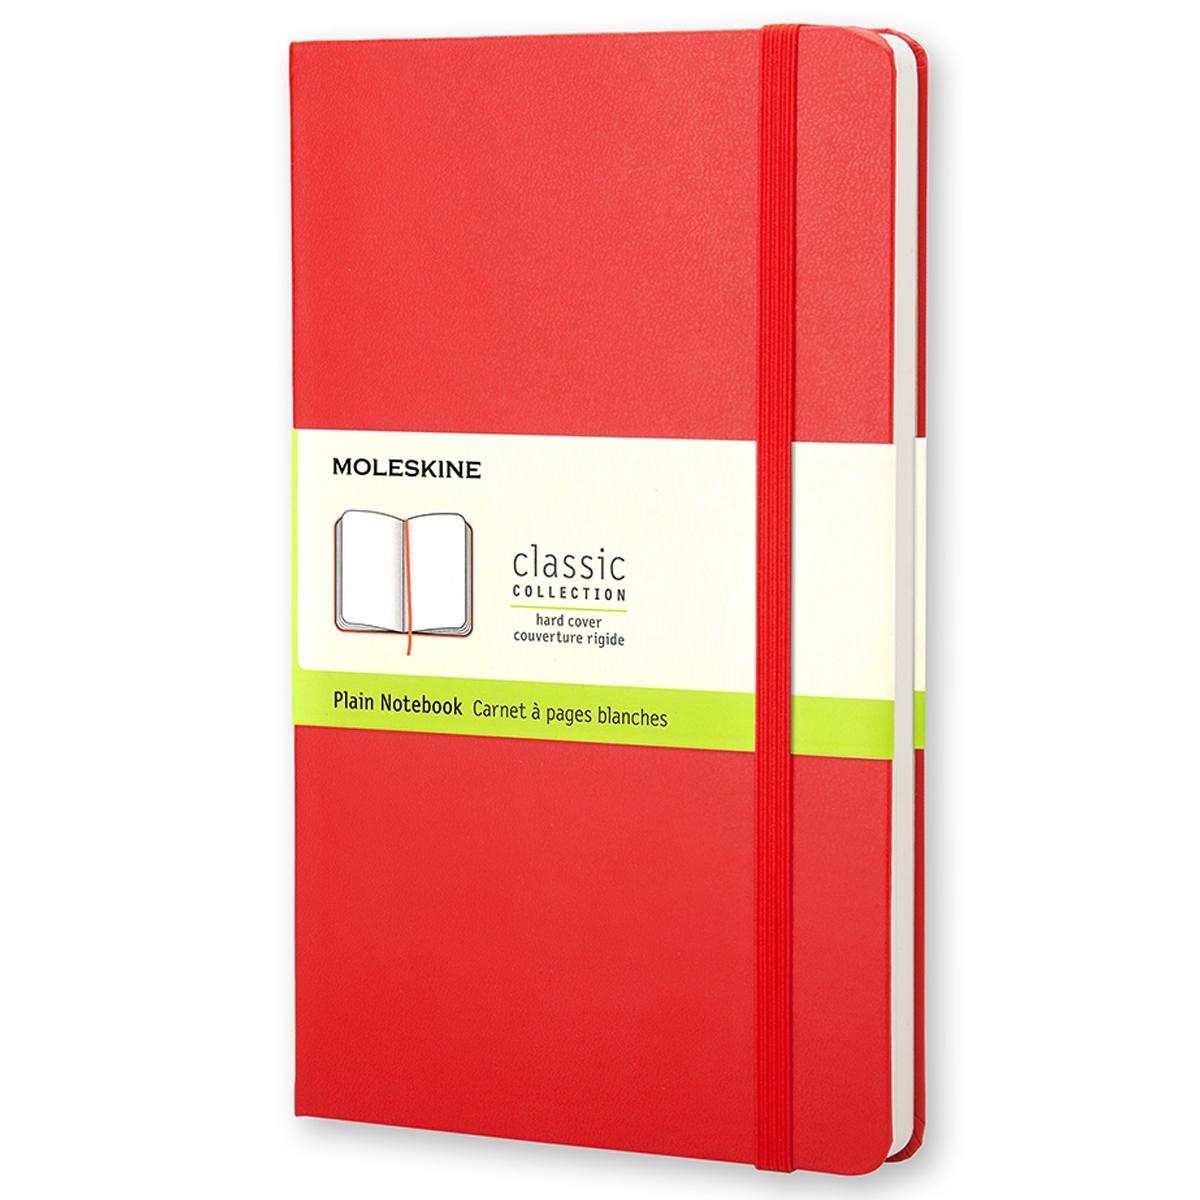 Classic Notebooks: Moleskine Classic Notebook, Large, Plain, Red, Hard Cover (5 X 8.25) (Hardcover)